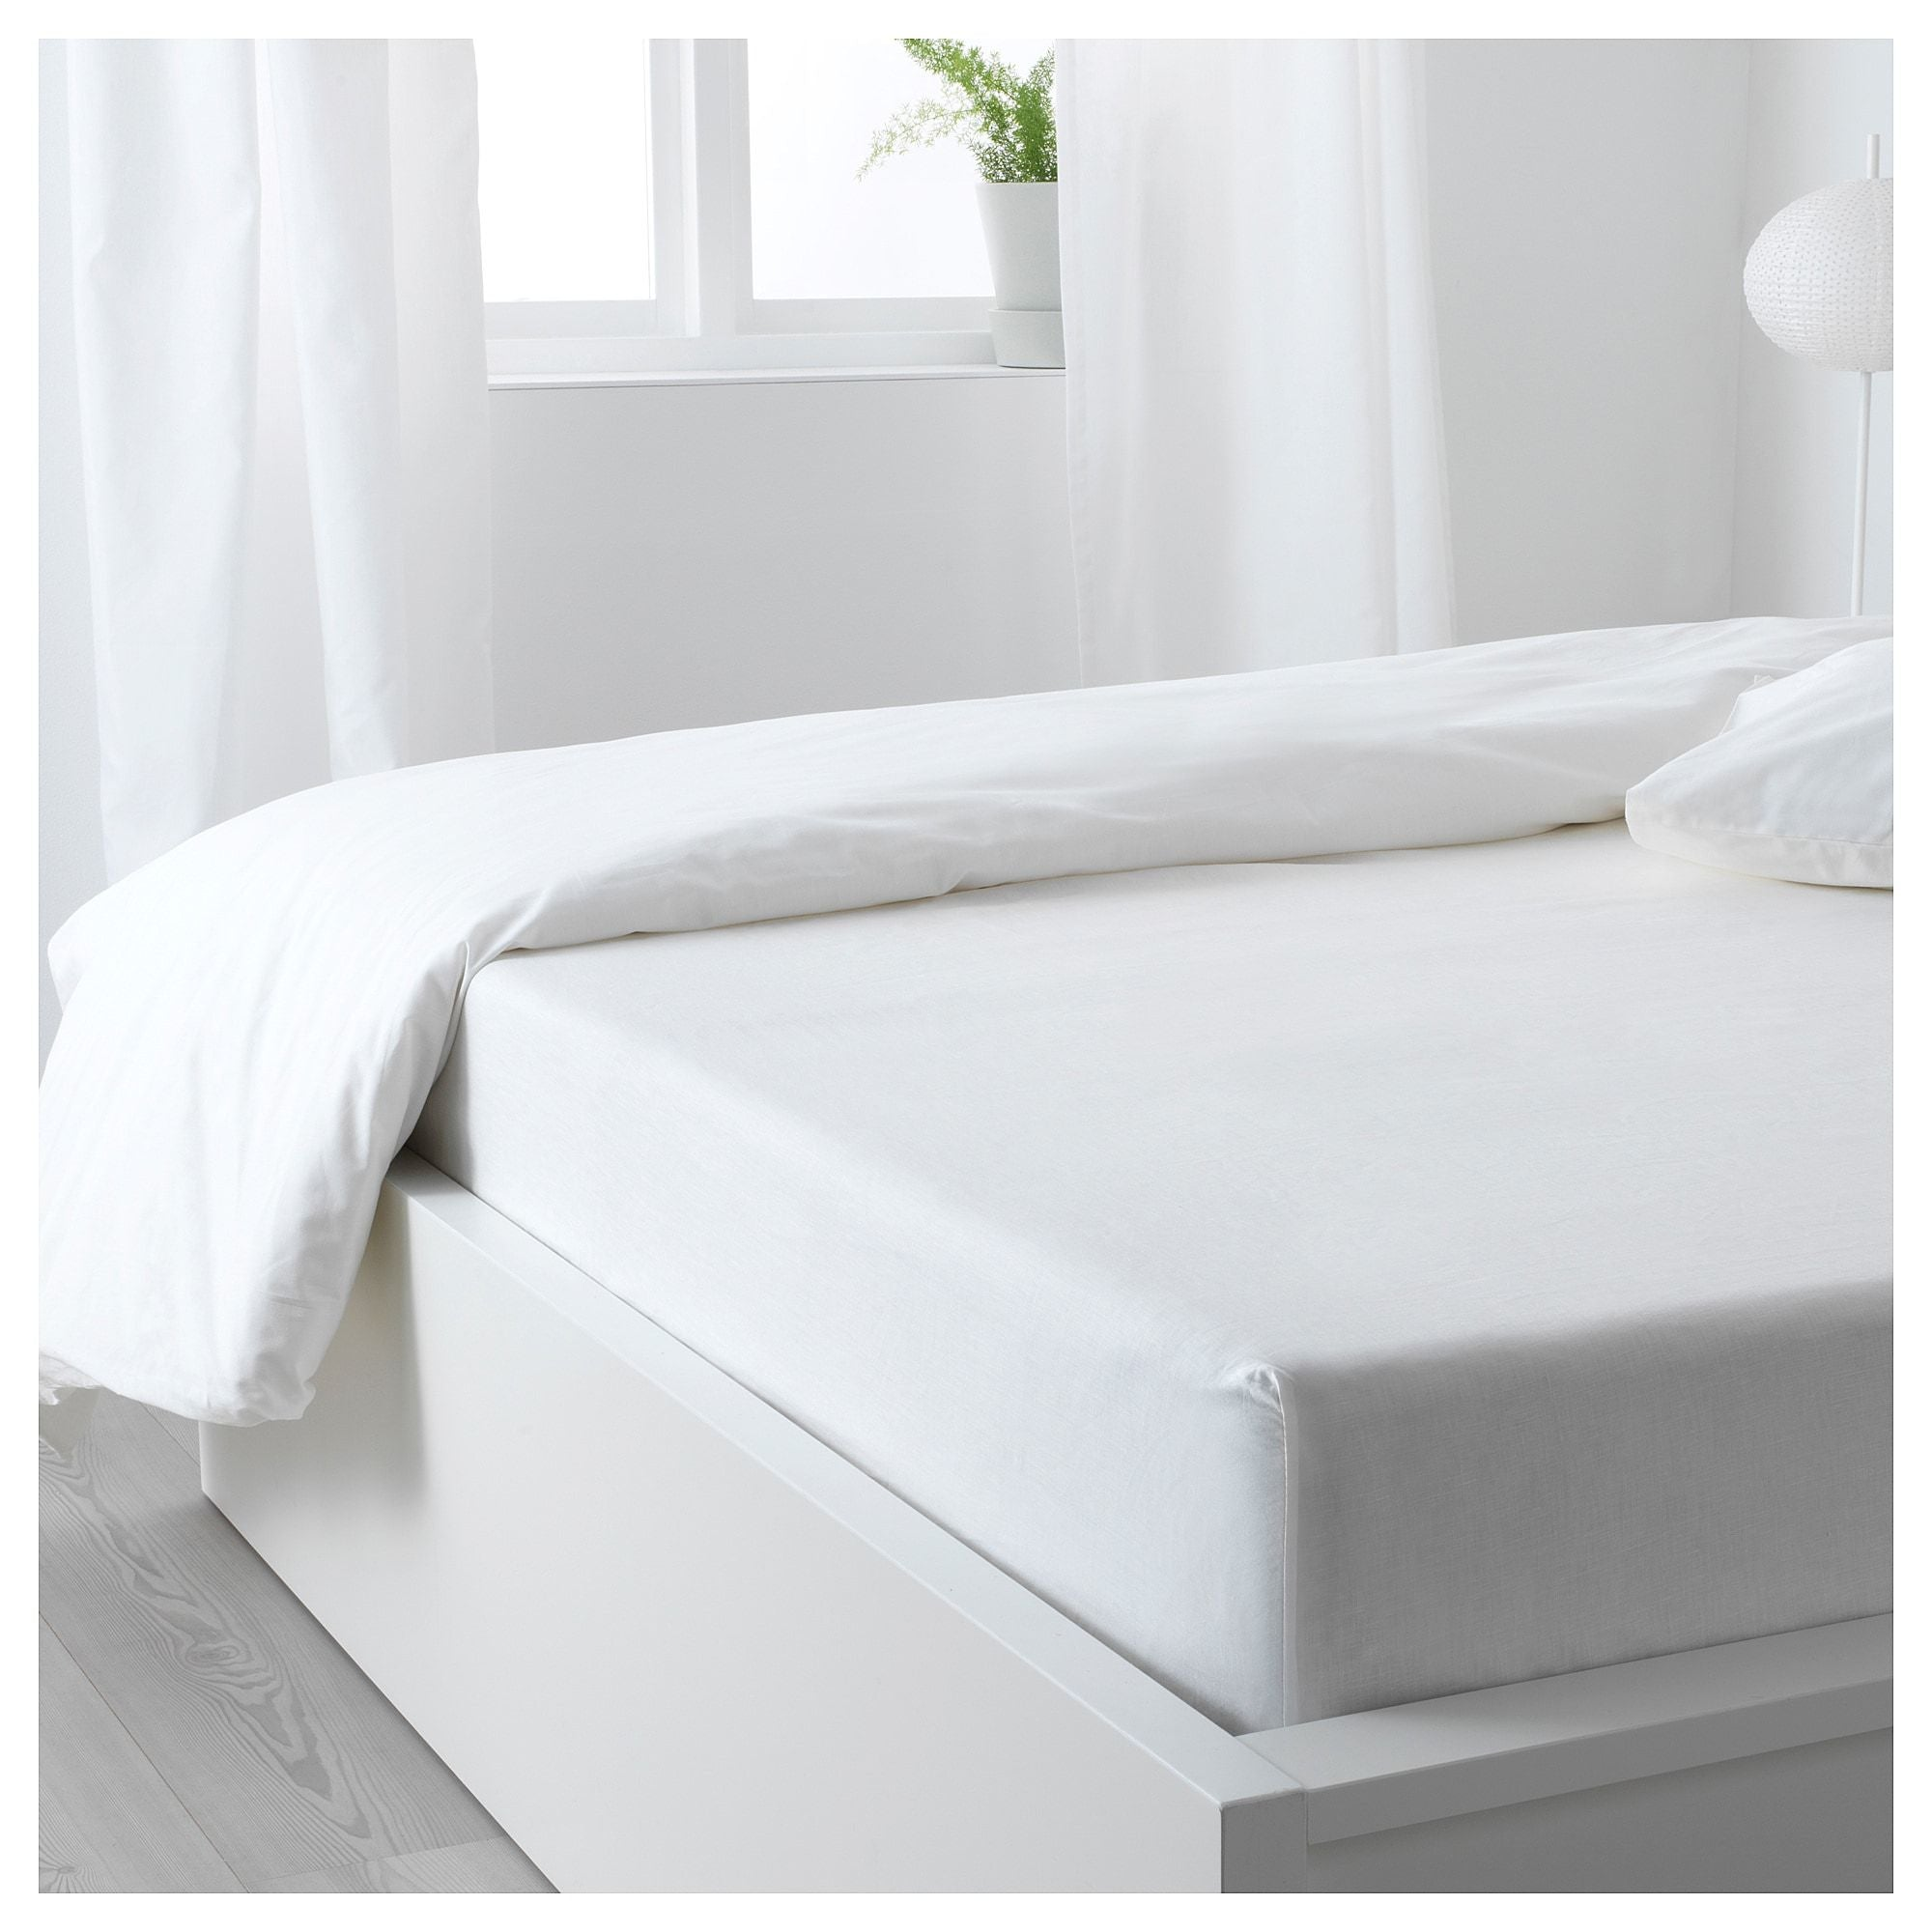 Fitted Sheet - Plain White - waseeh.com